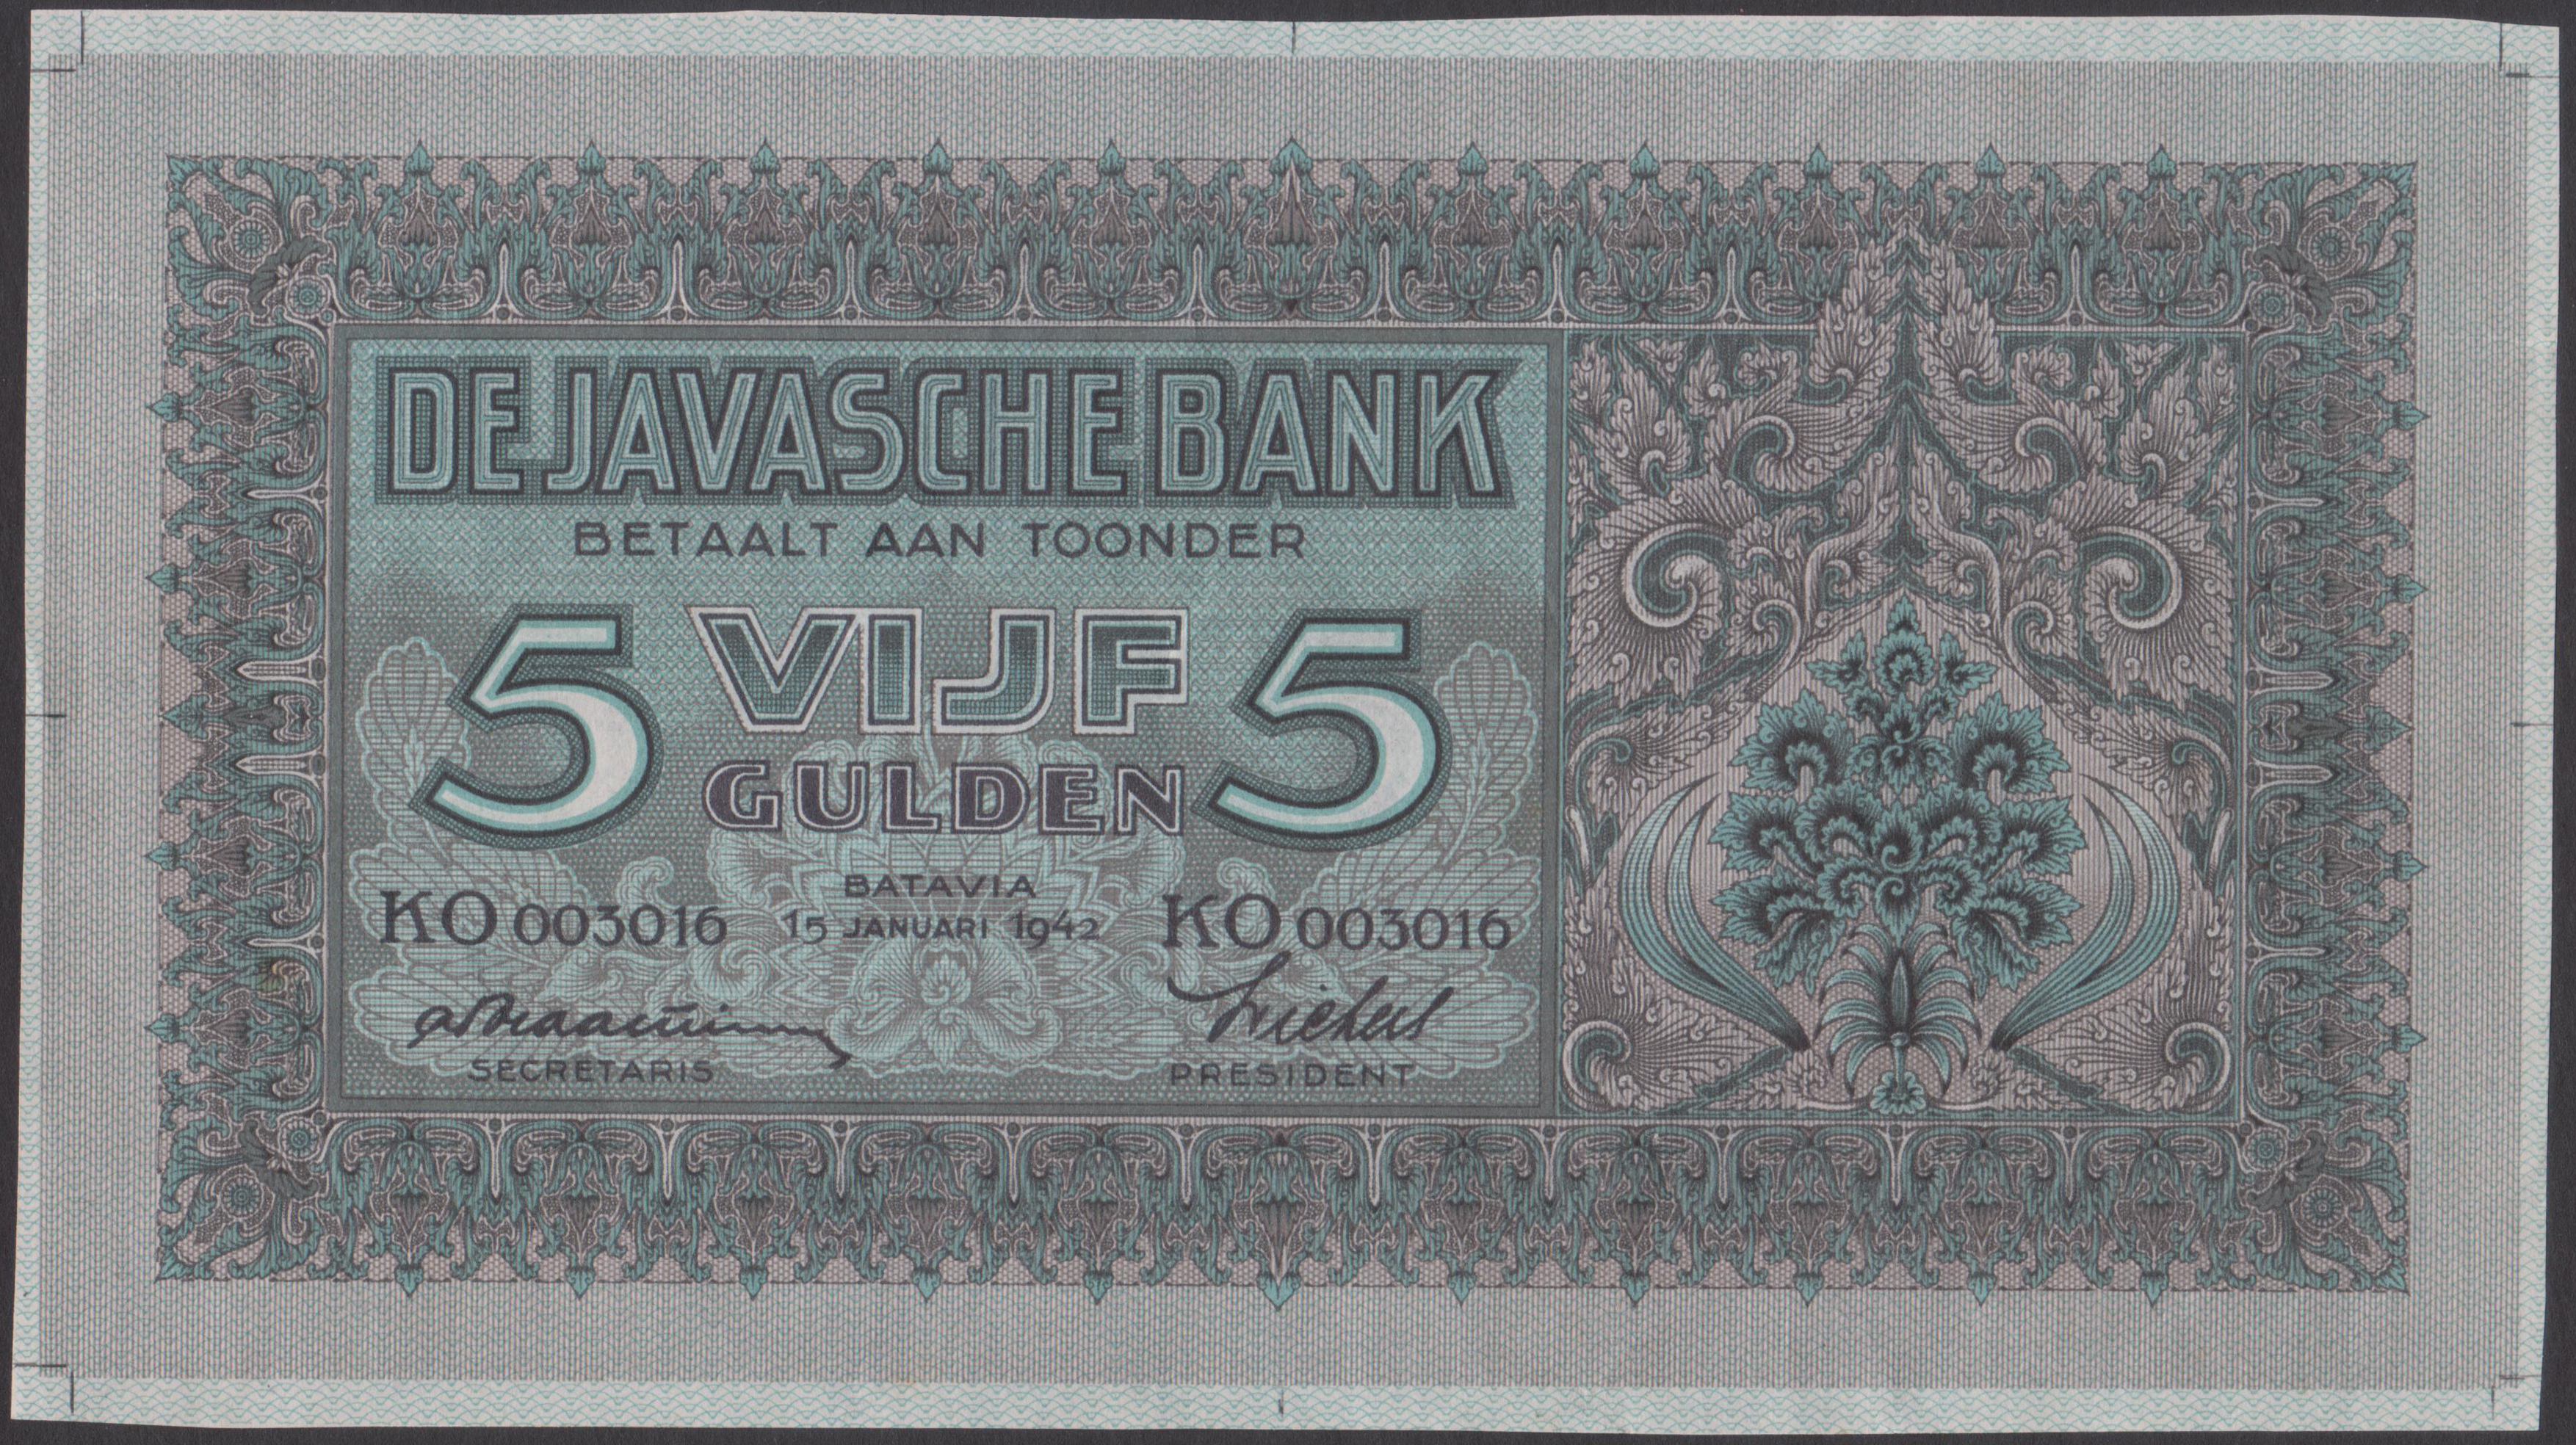 New discovery: Netherlands Indies 5 gulden 1942 without specimen overprint and perforation